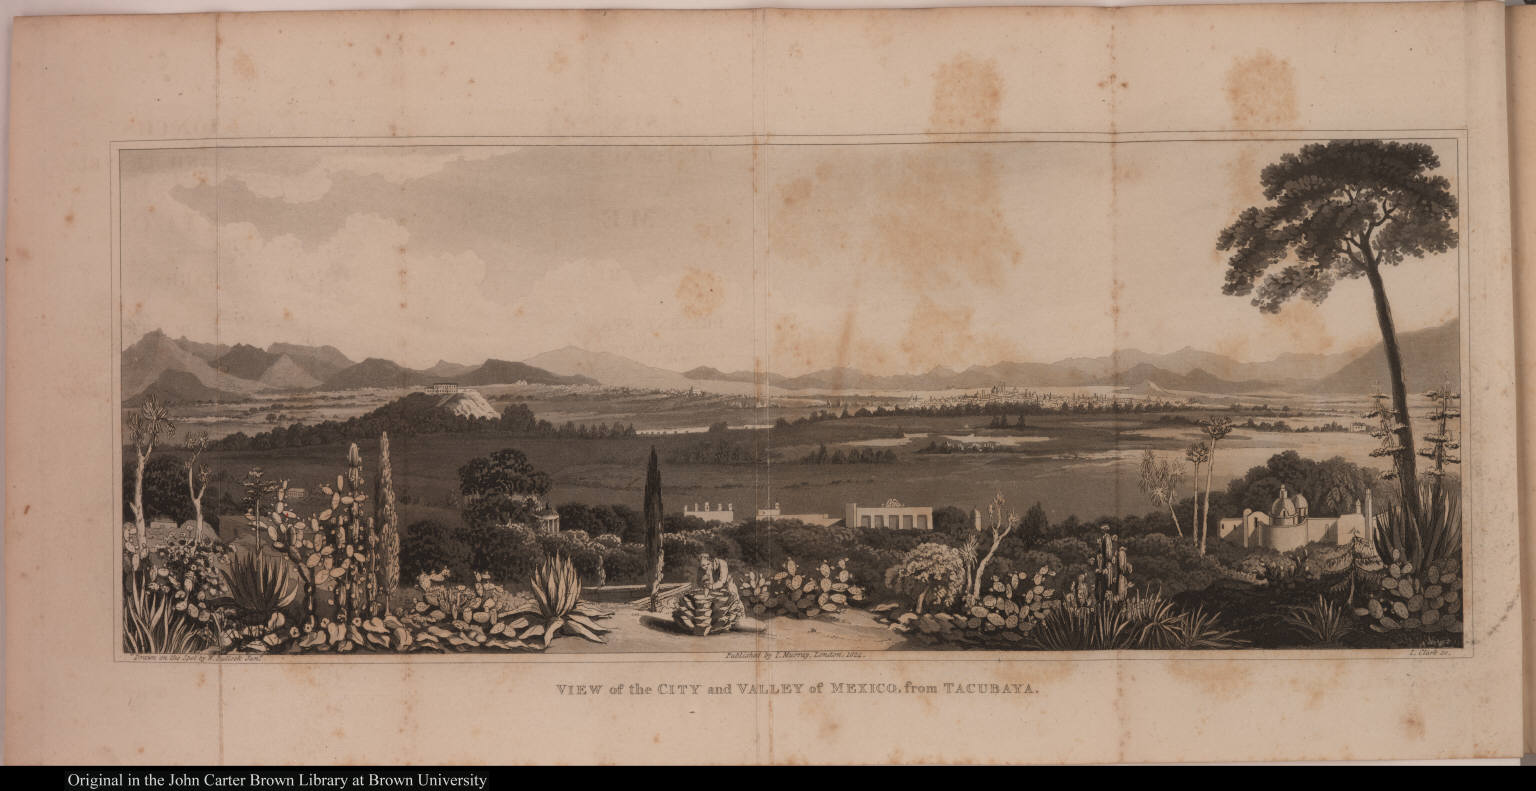 View of the City and Valley of Mexico, from Tacubaya.